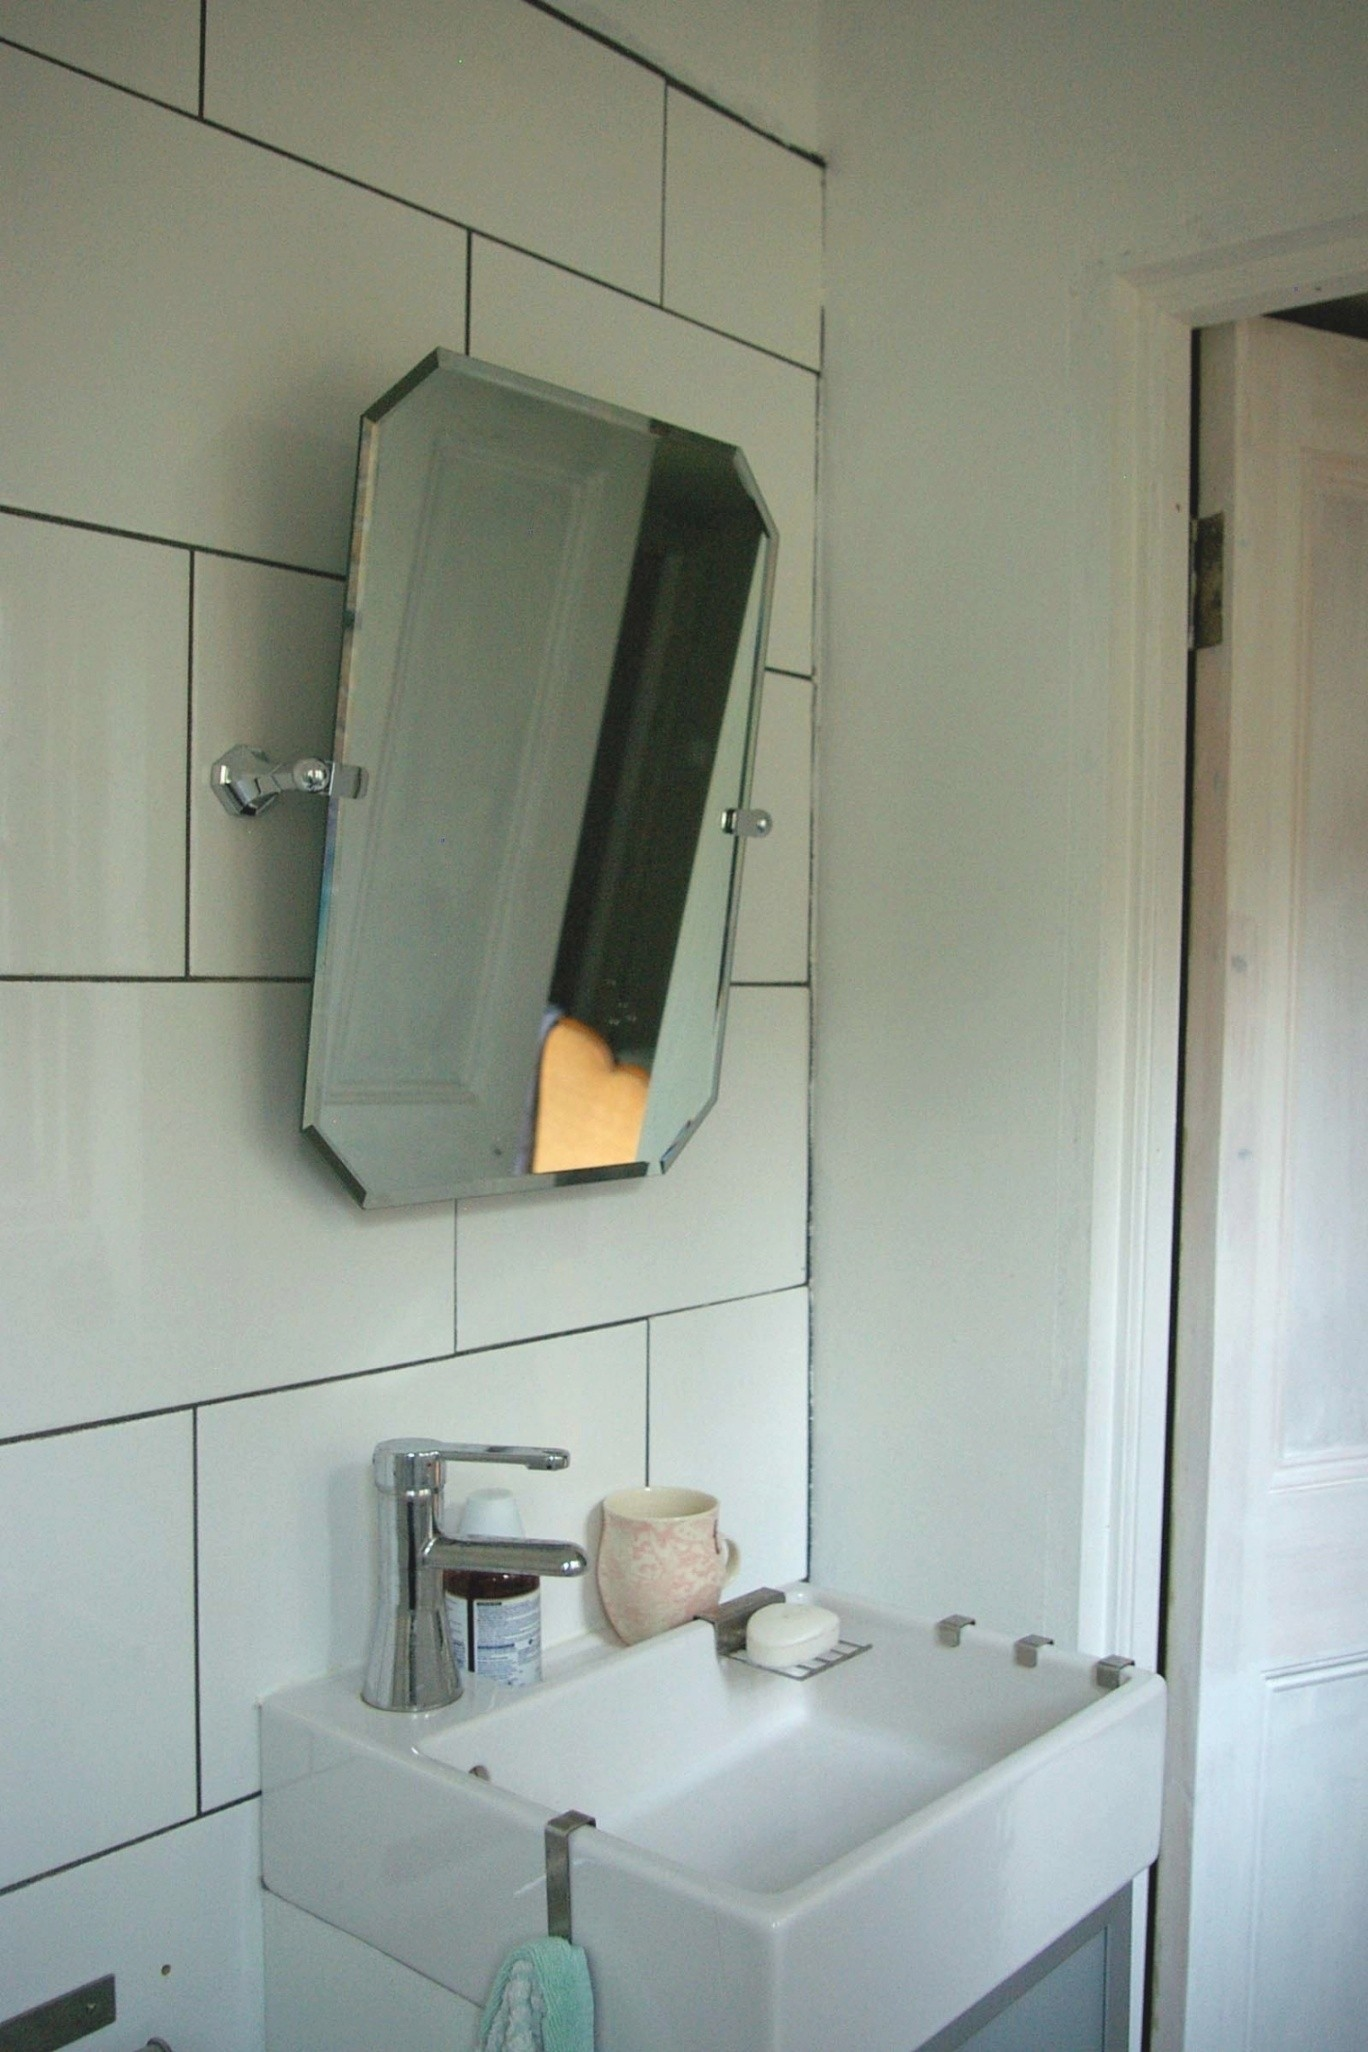 Bathroom Pivot Mirror Stunning Bathroom Pivot Mirror Bathroom Creative Bathroom Pivot Mirror Inspiration